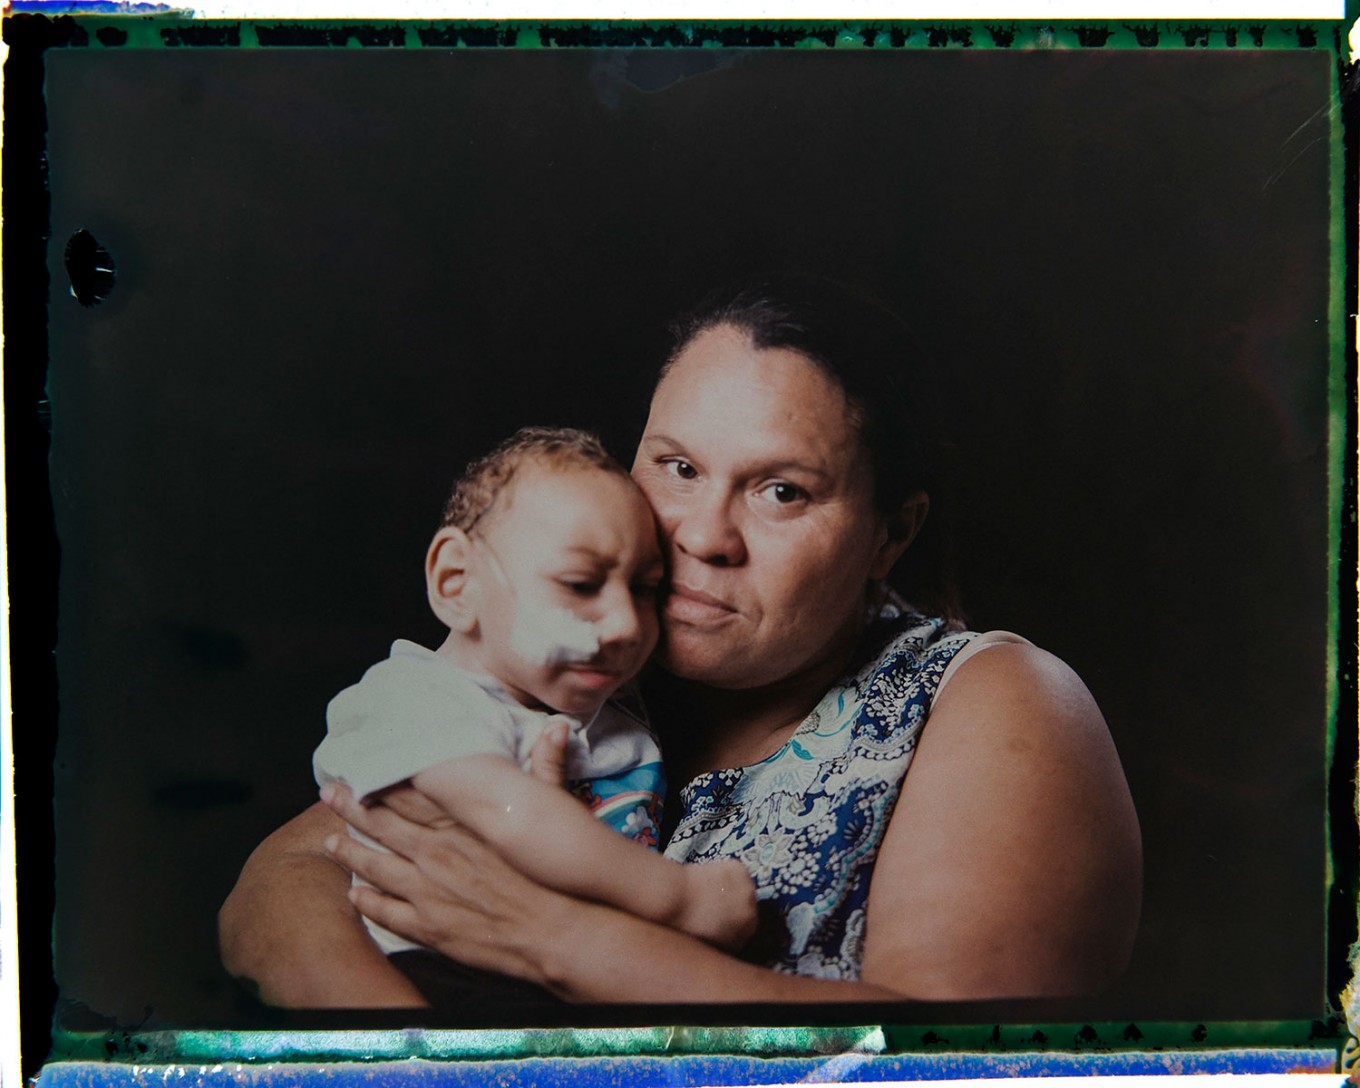 "In this Sept. 27, 2016 photo made from a negative recovered from instant film, Solange Ferreira holds her 1-year-old son Jose Wesley Campos, who was born with microcephaly, one of many serious medical problems that can be caused by congenital Zika syndrome, as they pose for a photo in Bonito, Pernambuco state, Brazil. The boy came to be known as the ""bucket baby"" because of a Dec. 23, 2015 photograph of him in a bucket filled with water to help him calm down. The image became emblematic of Brazil's Zika epidemic amid a surge of babies being born with unusually small heads in the country's northeast. AP Photo/Felipe Dana"